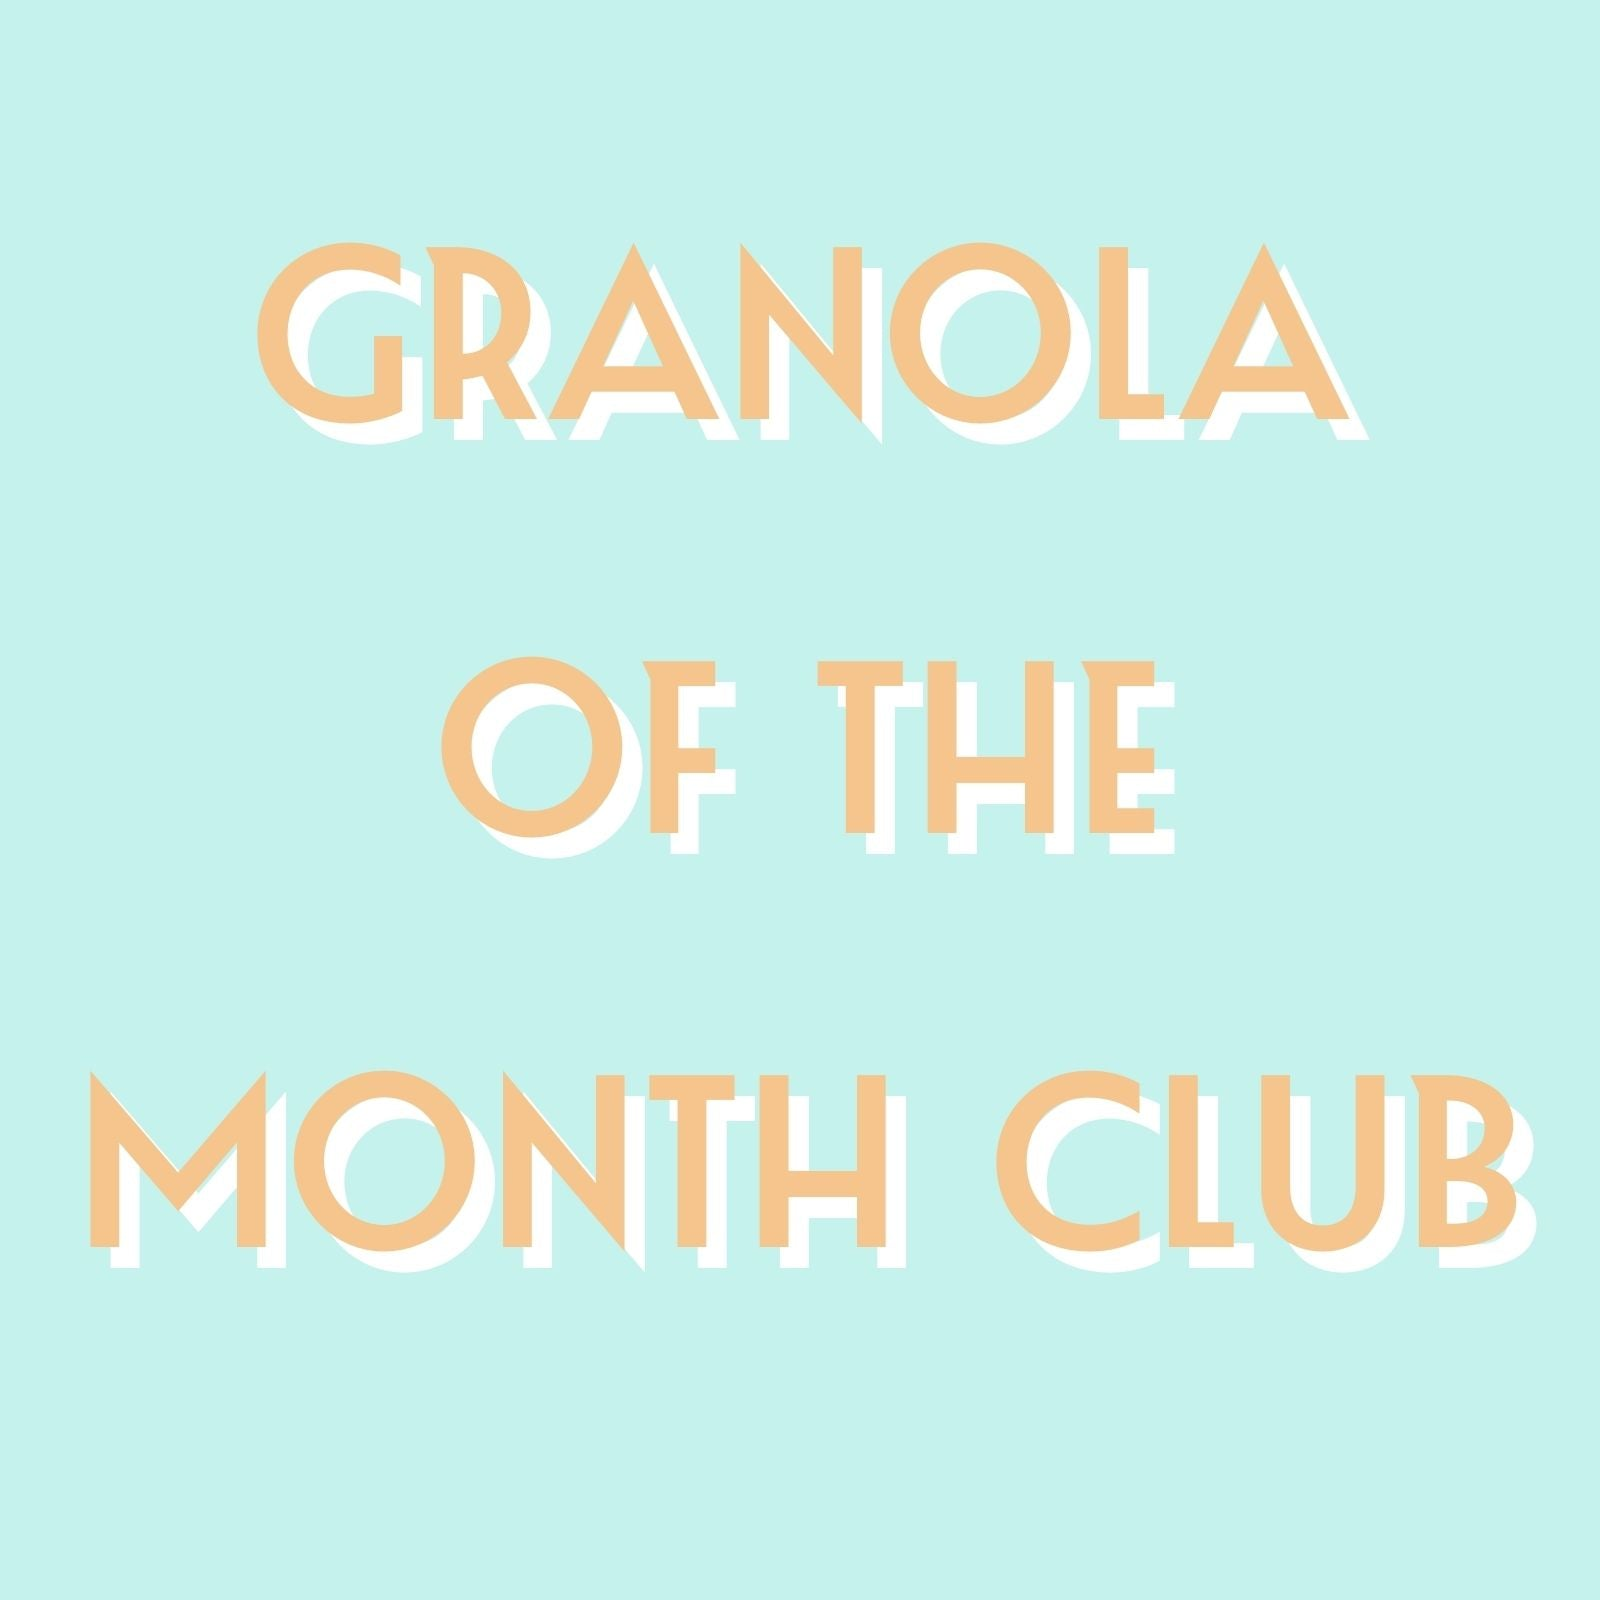 Granola of the Month Club